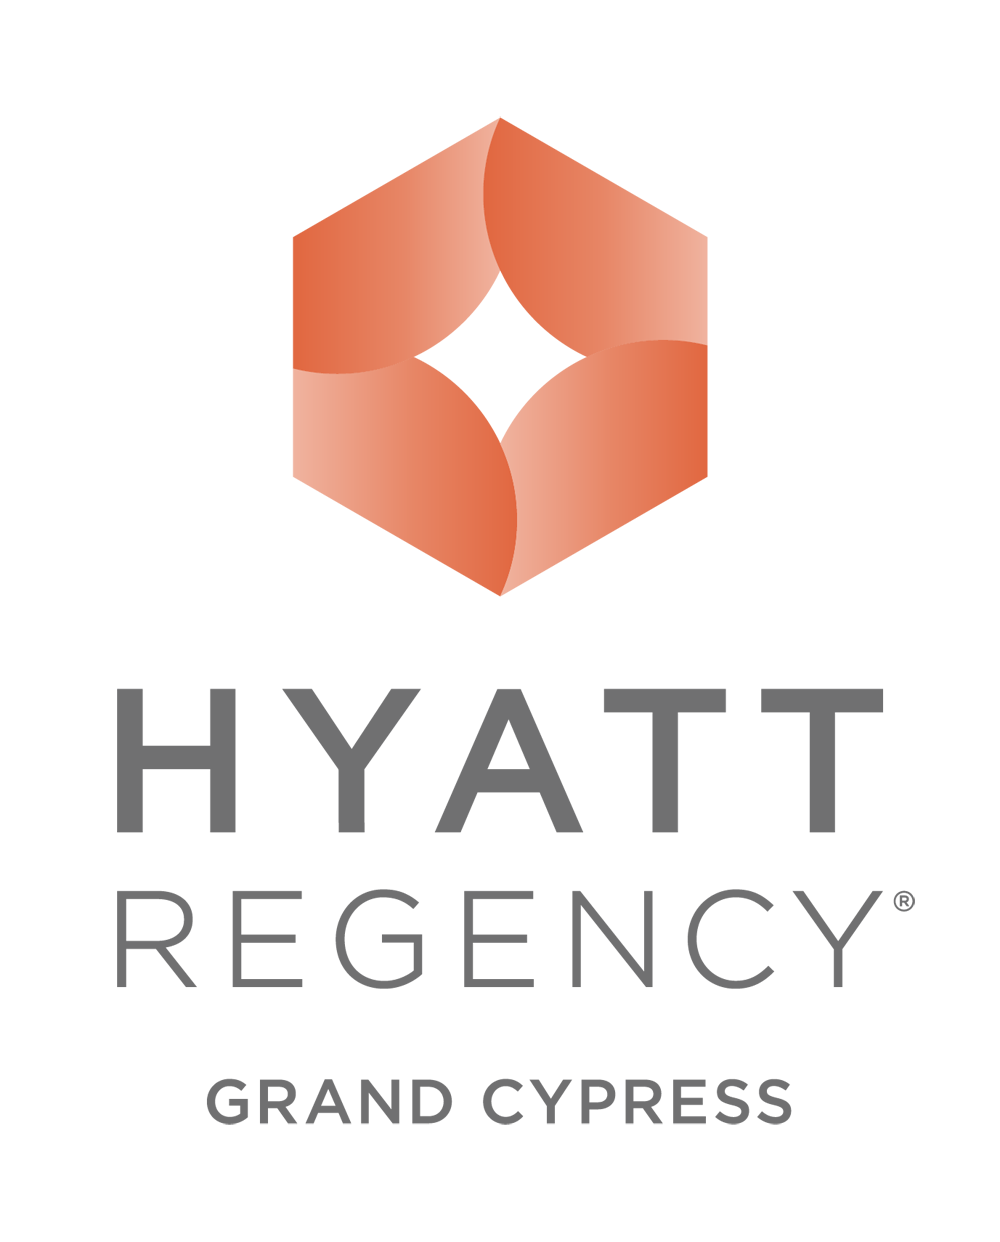 Hyatt Regency Grand Cypress logo